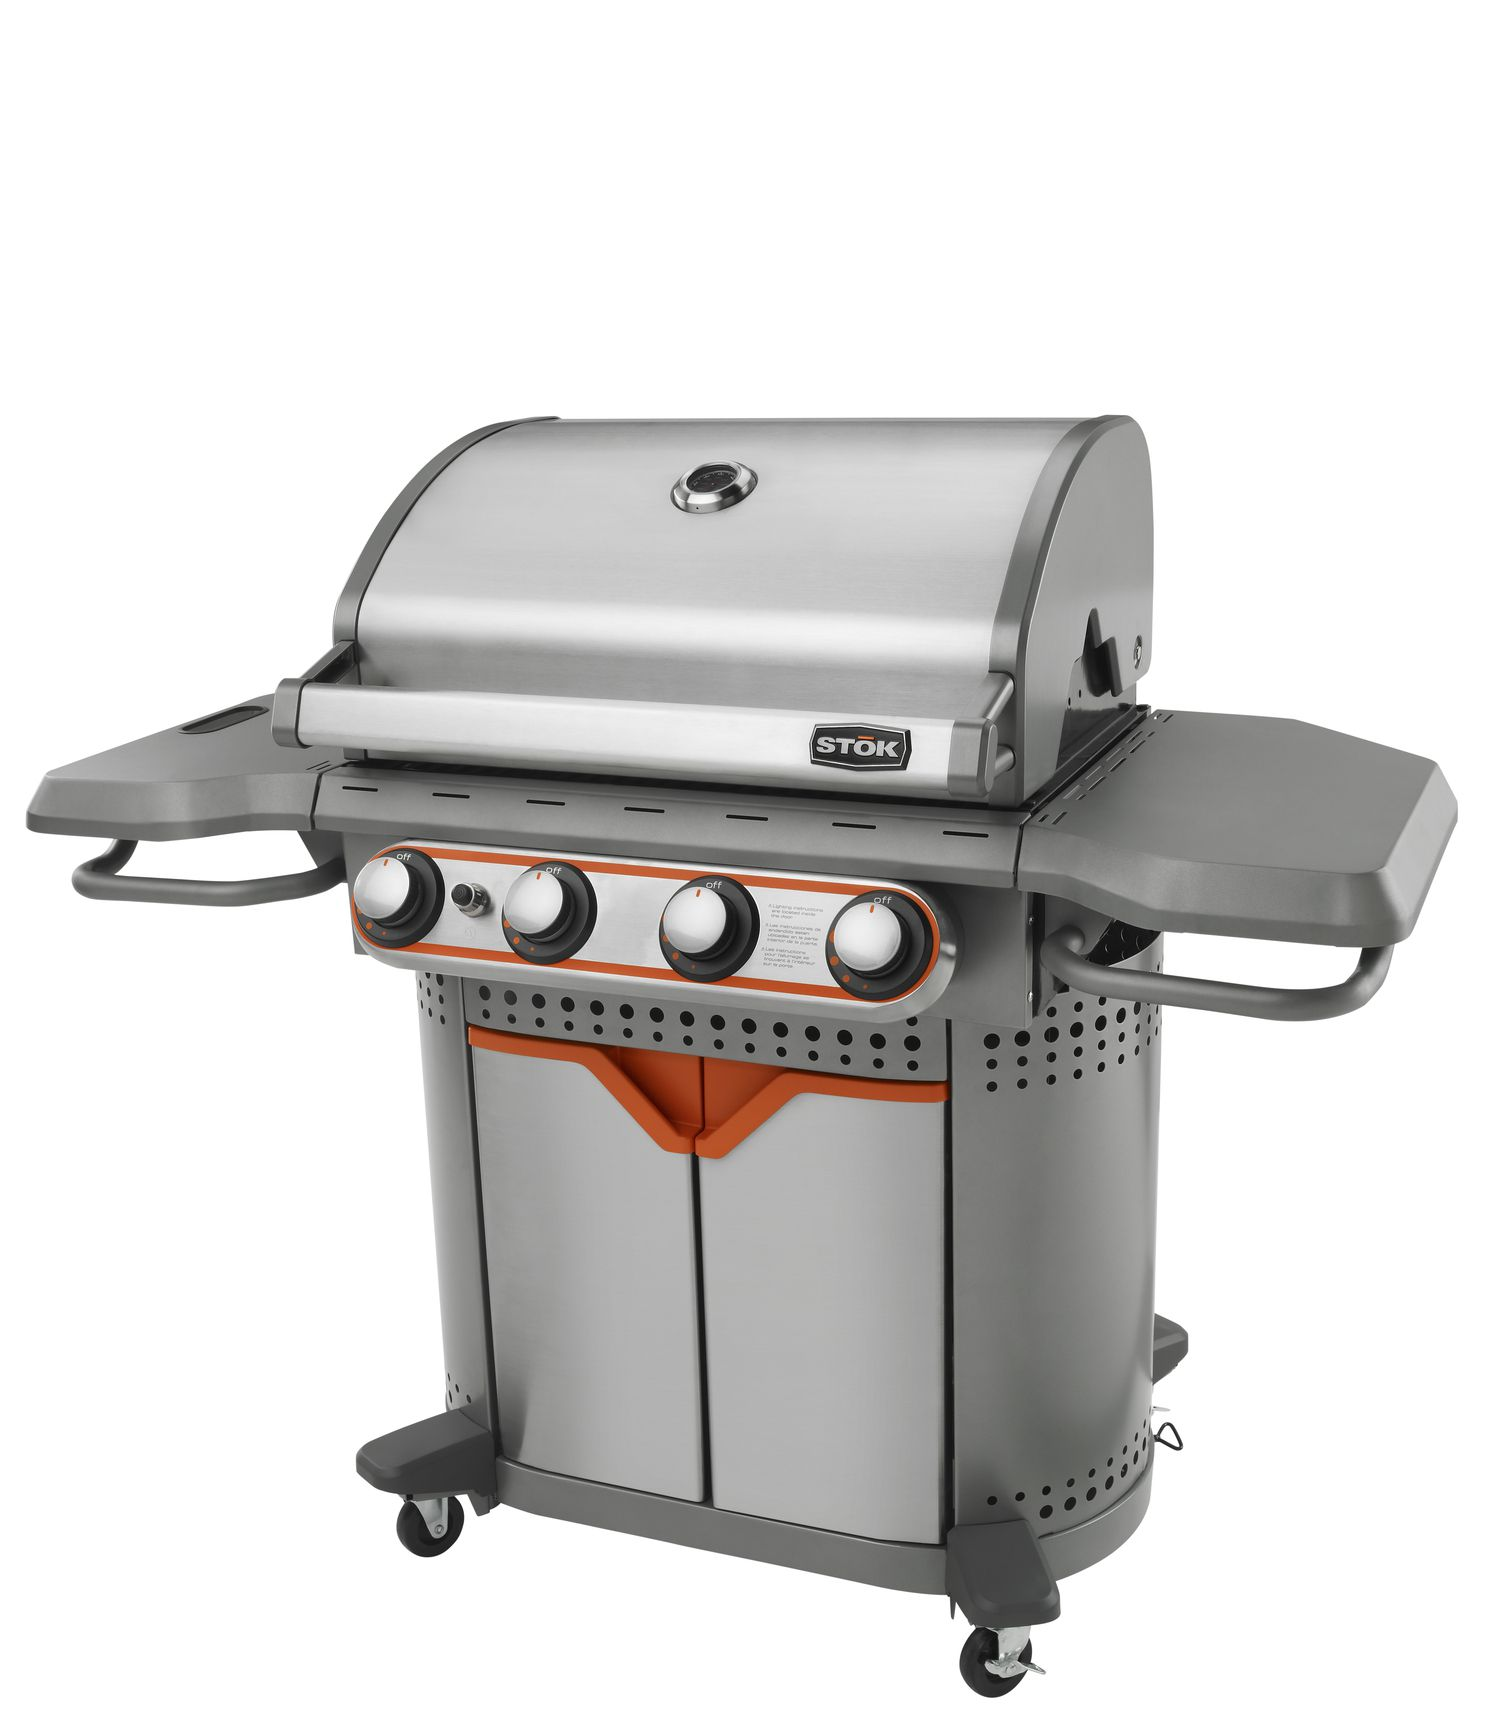 Outdoor Grill and Smoker Product Recalls